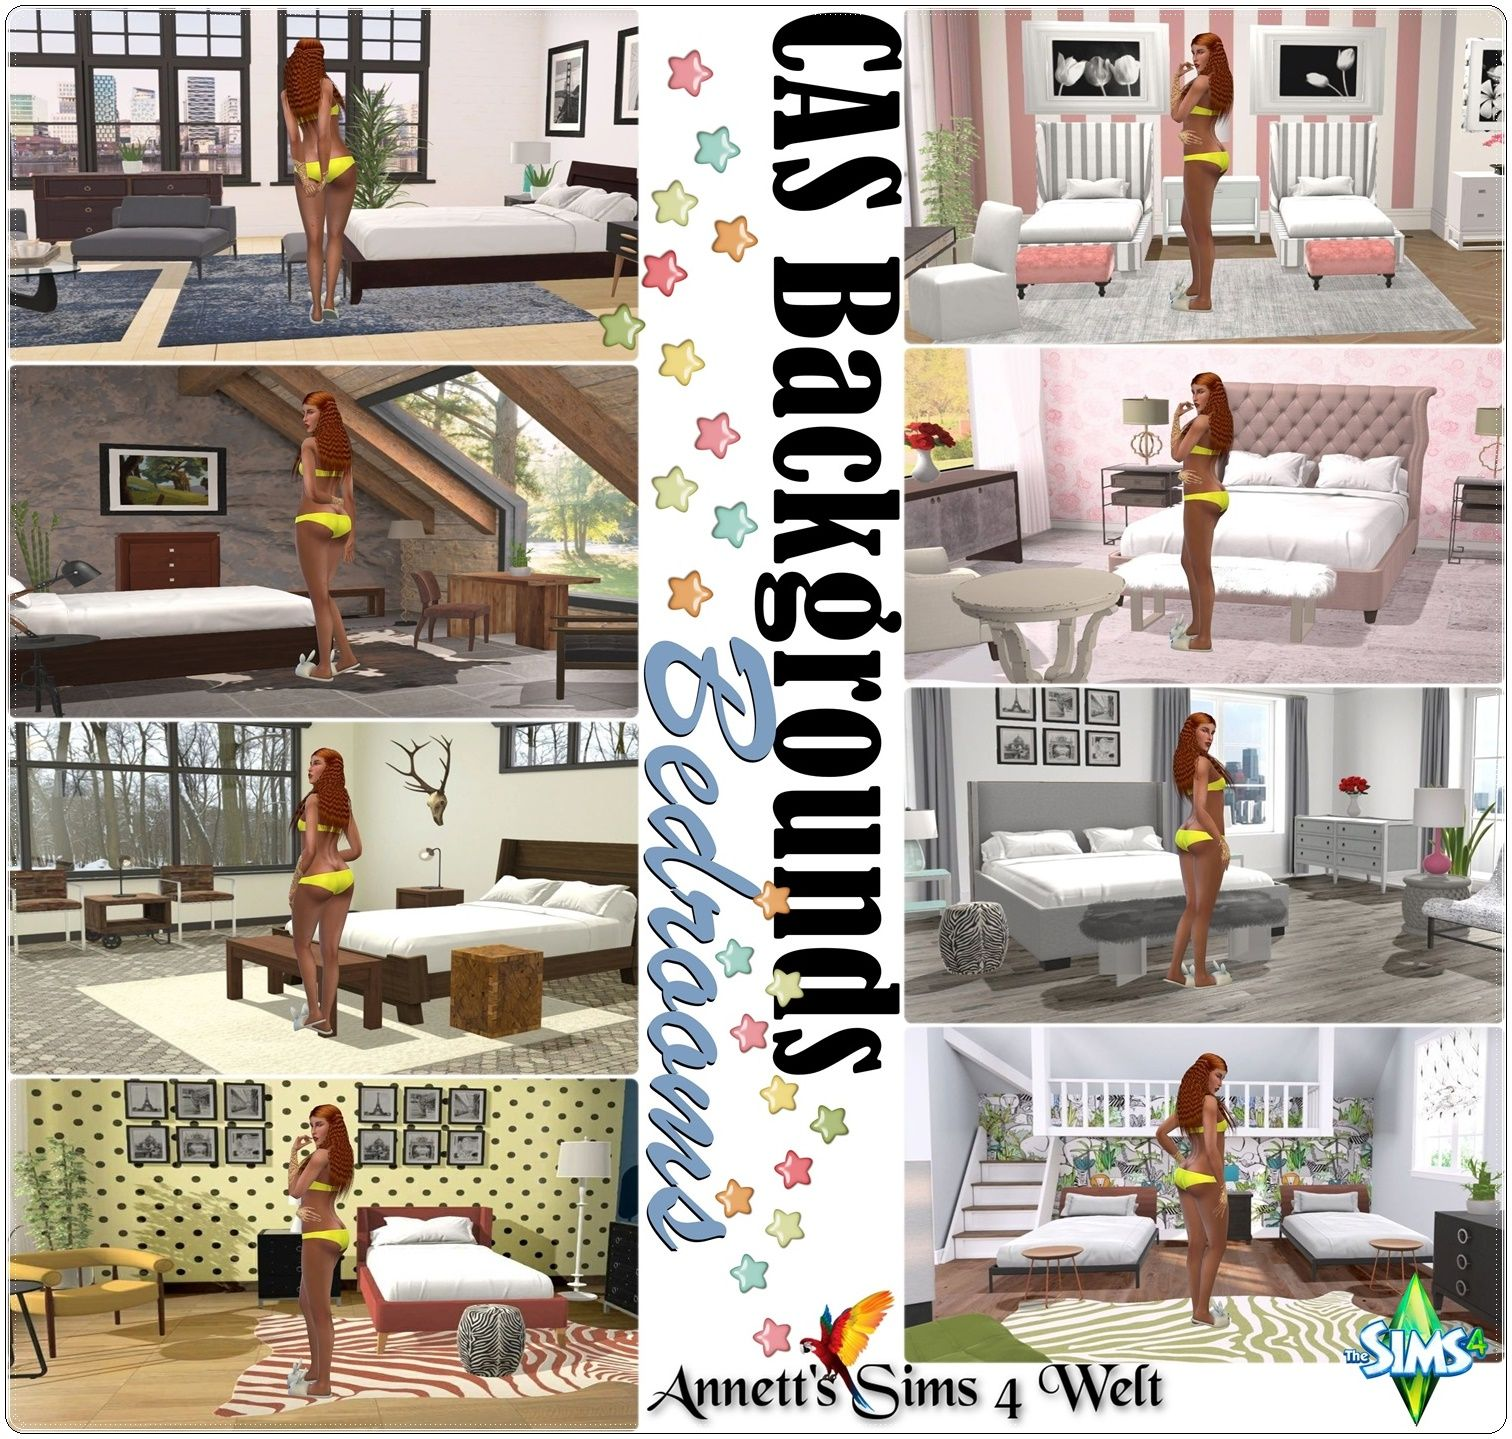 S Nothing to fear plant small Sims Sims 4 Sims 4 clutter